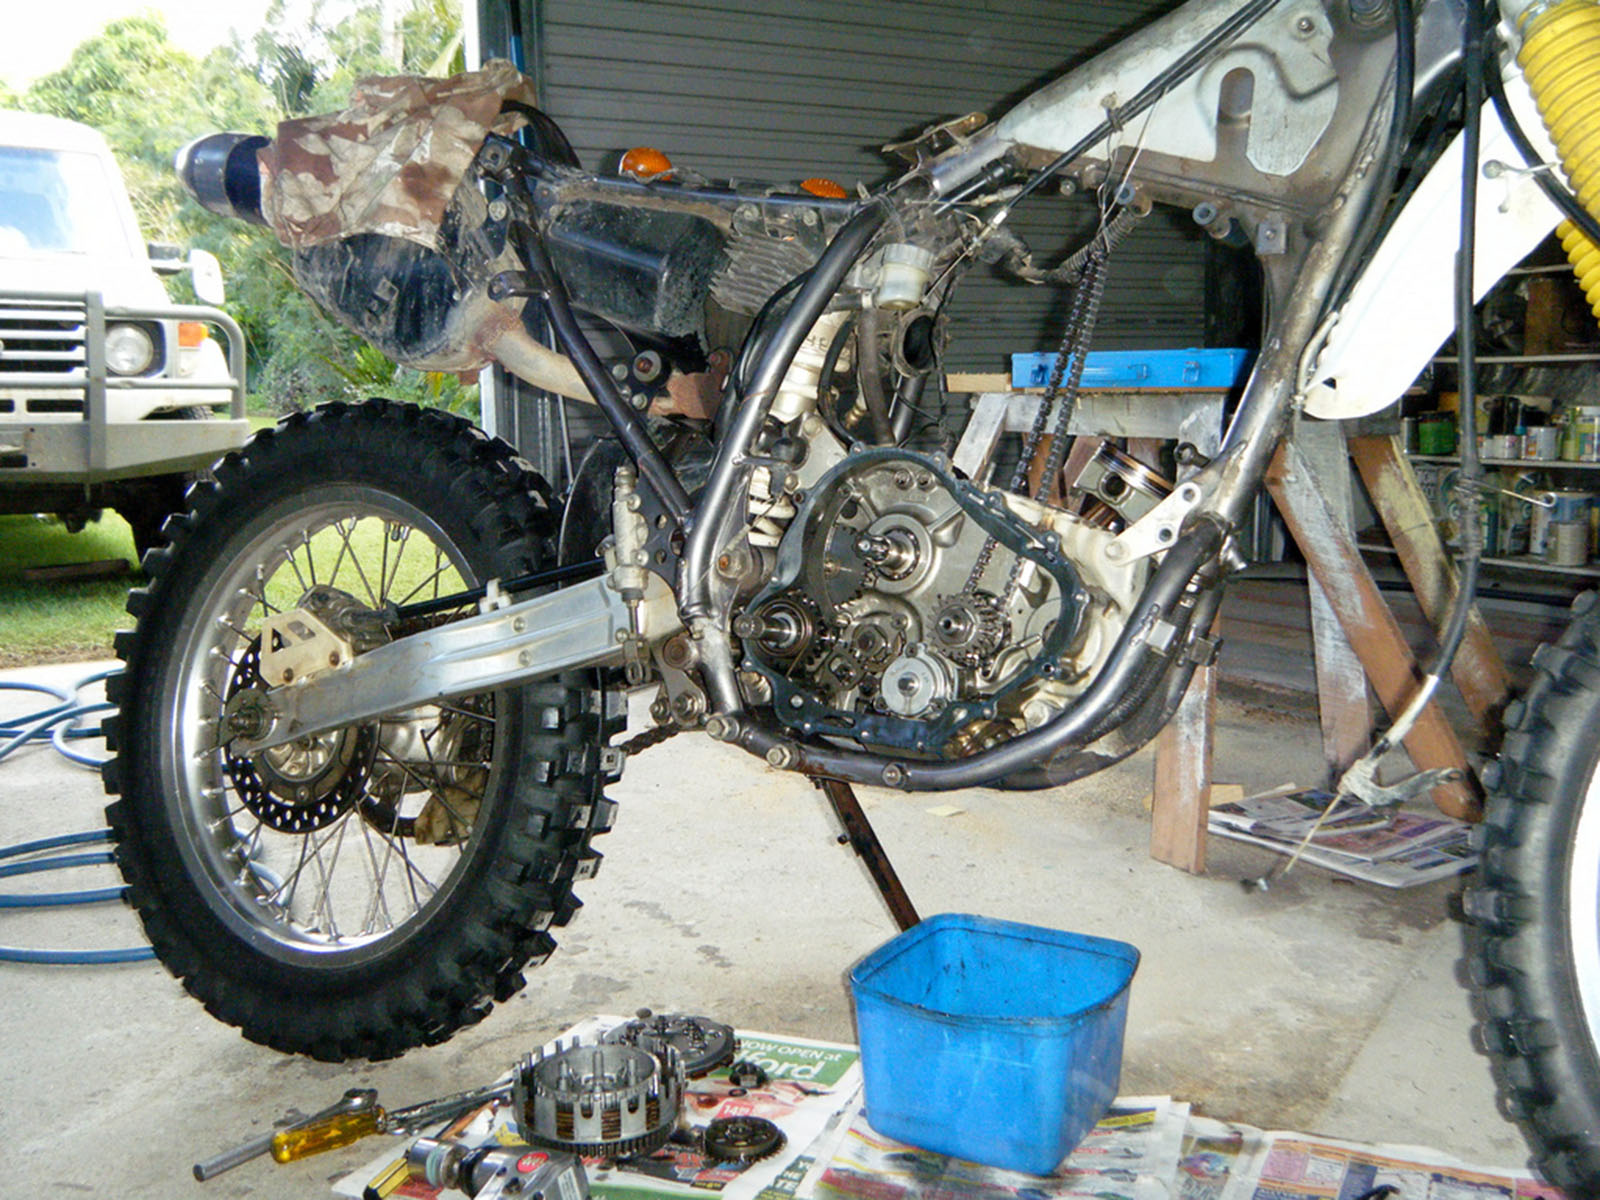 DR 350 - Stripped down